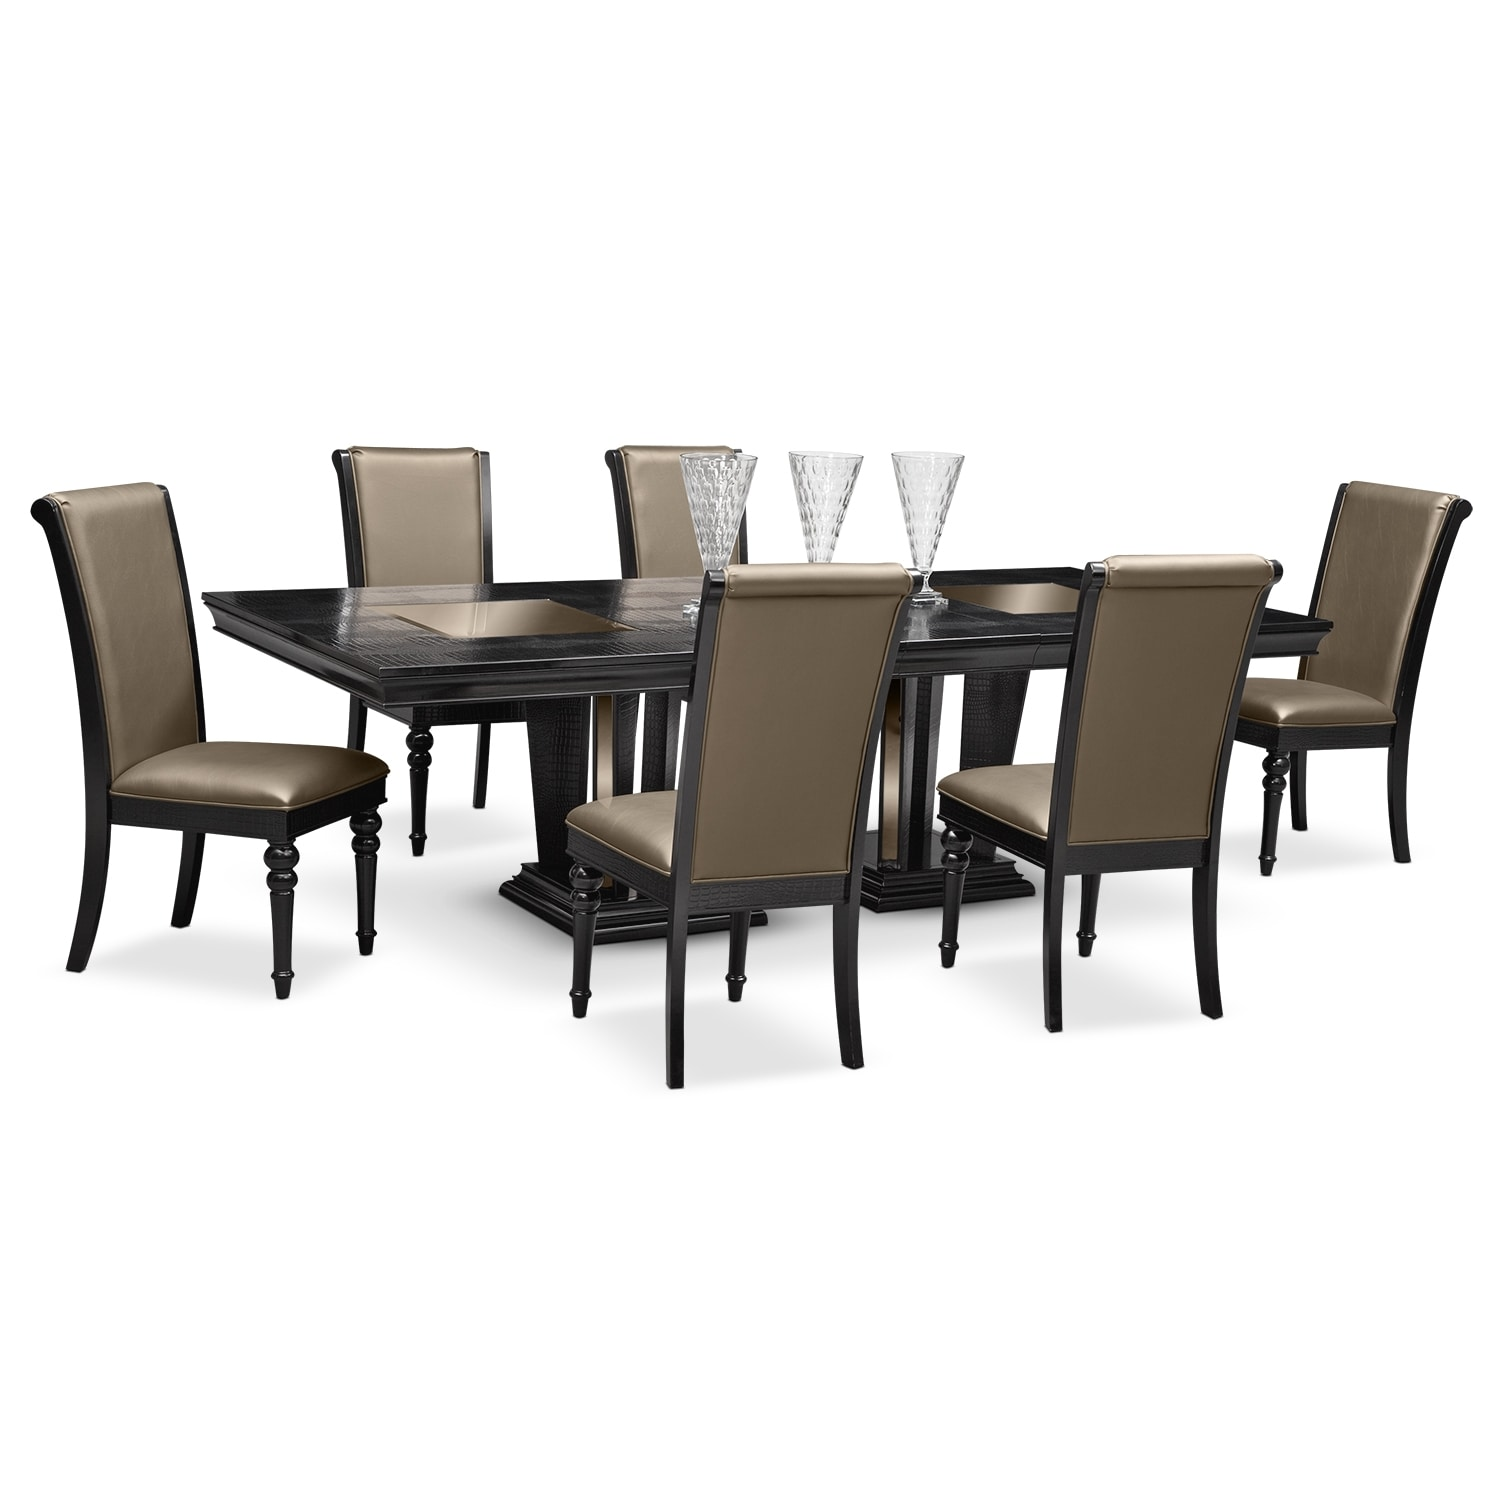 City Furniture Dining Room: Value City Furniture